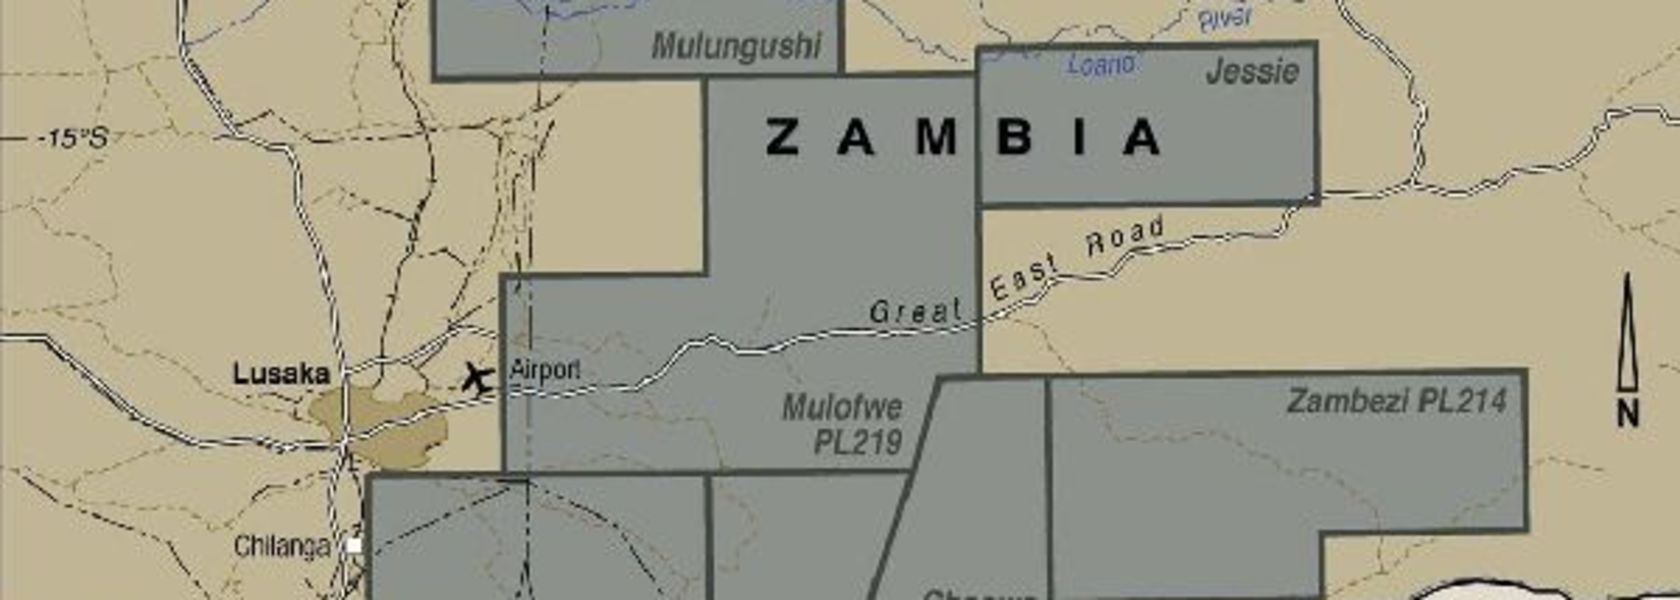 Zambezi goes to ground